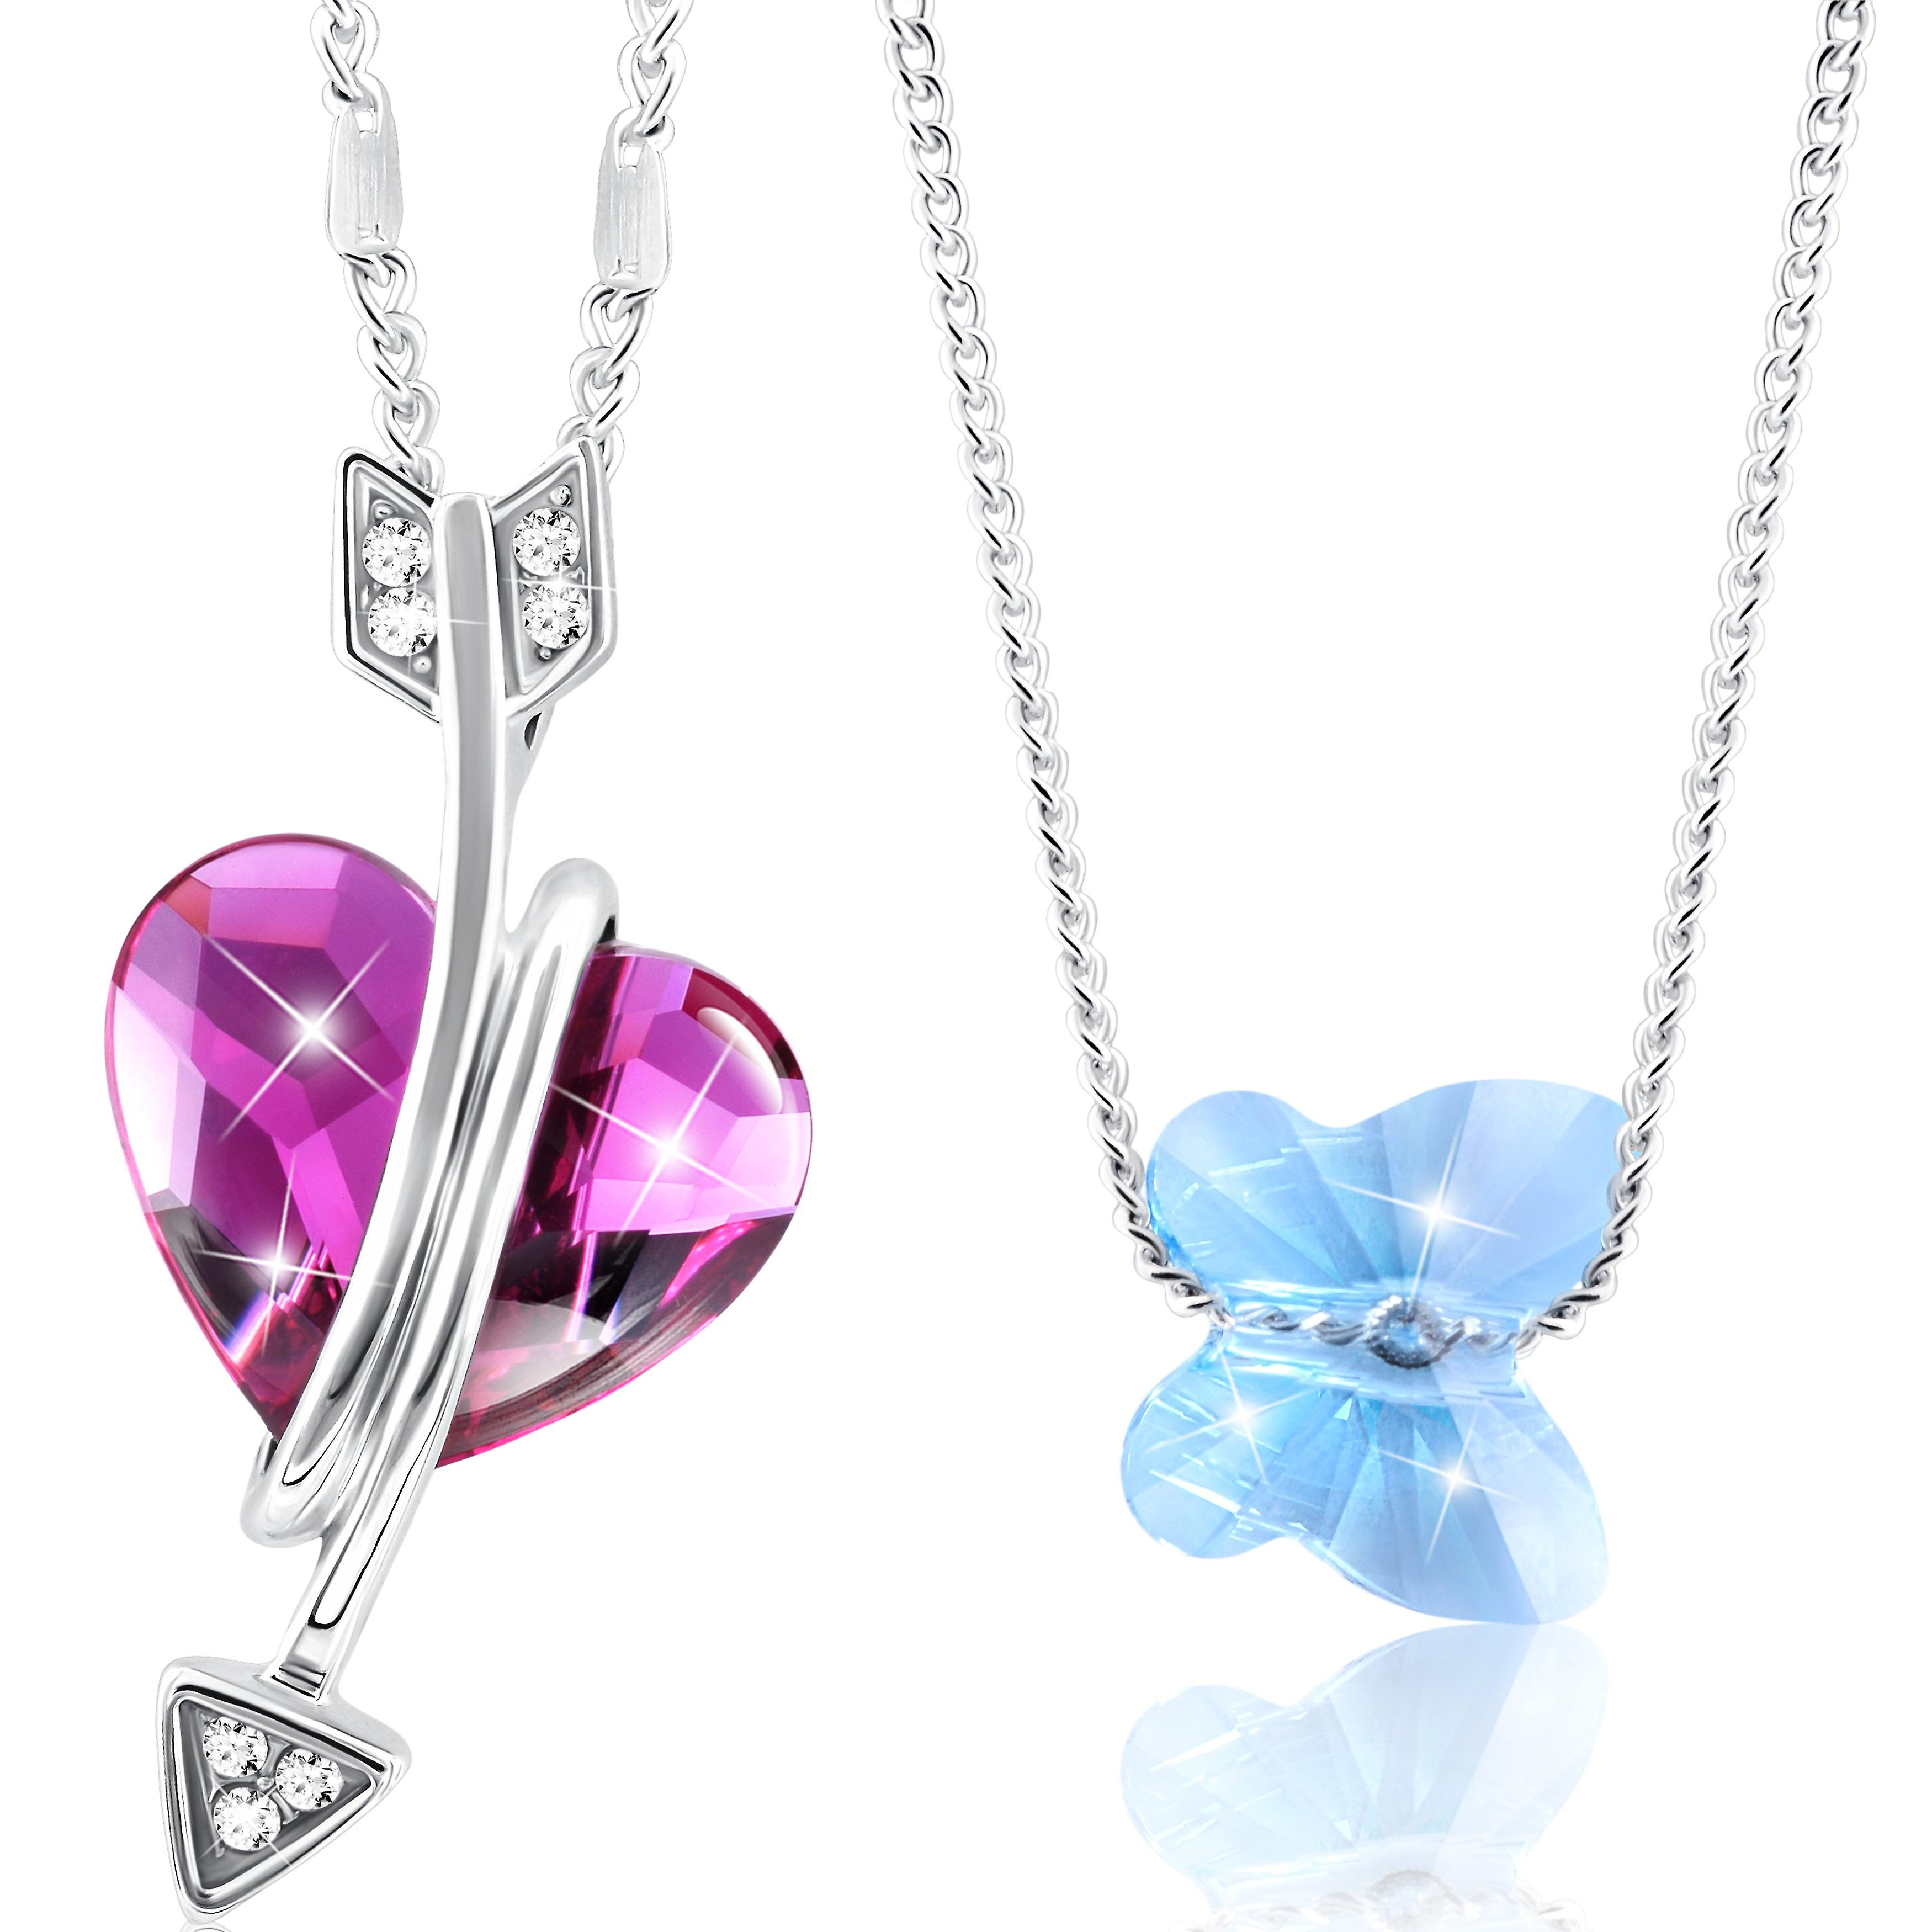 Rhodium plated necklaces set with swarovski crystals by 2splendid. set of 2. with beautiful box. nnqz040-41